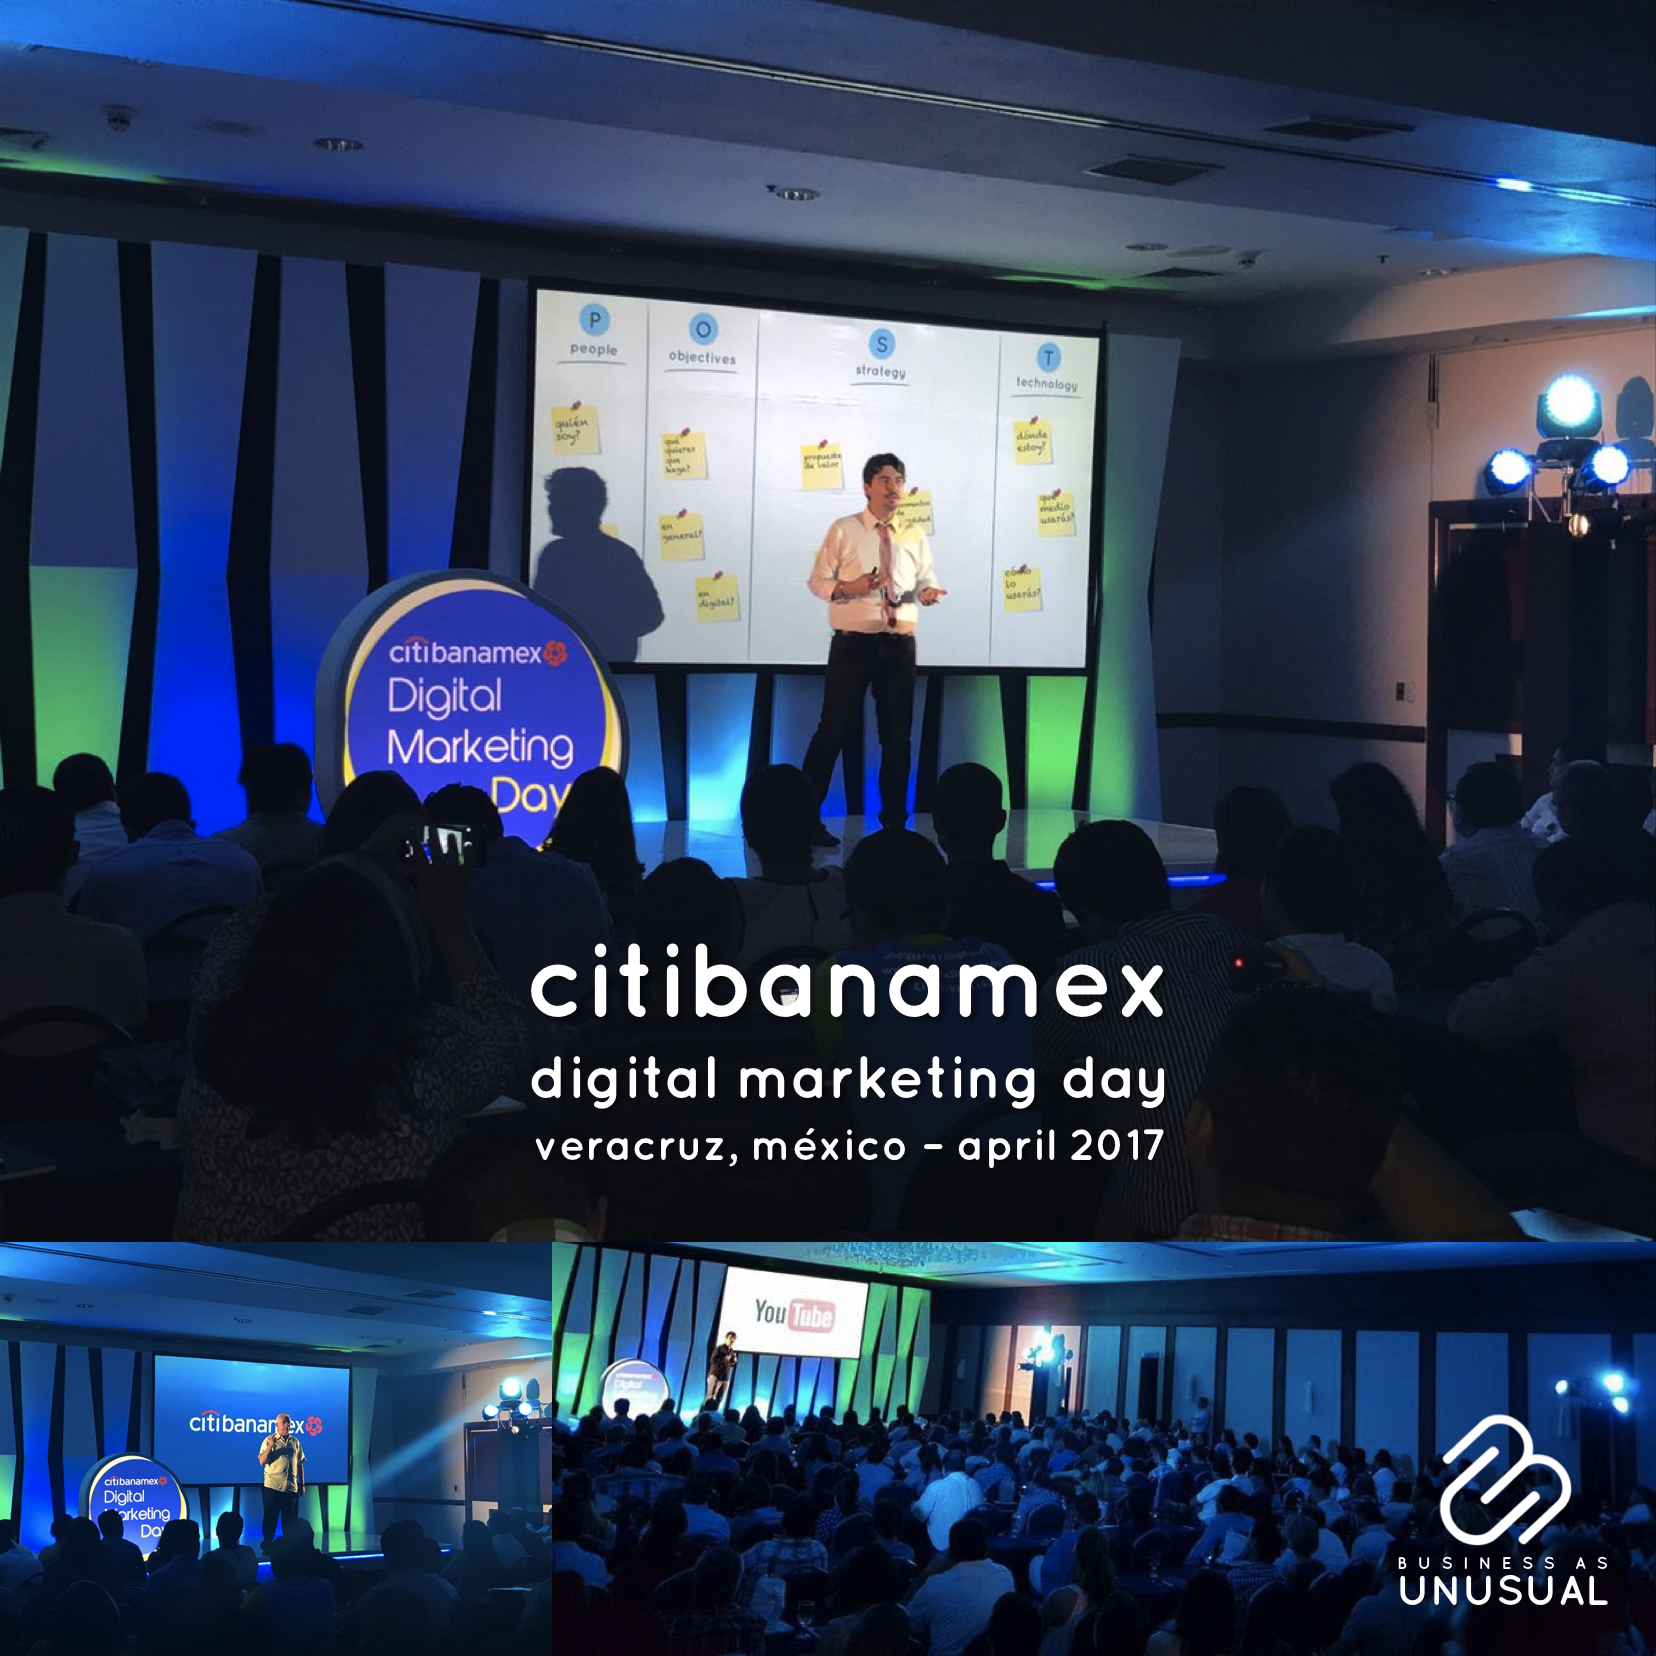 Citibanamex - Digital Marketing Day - Veracruz